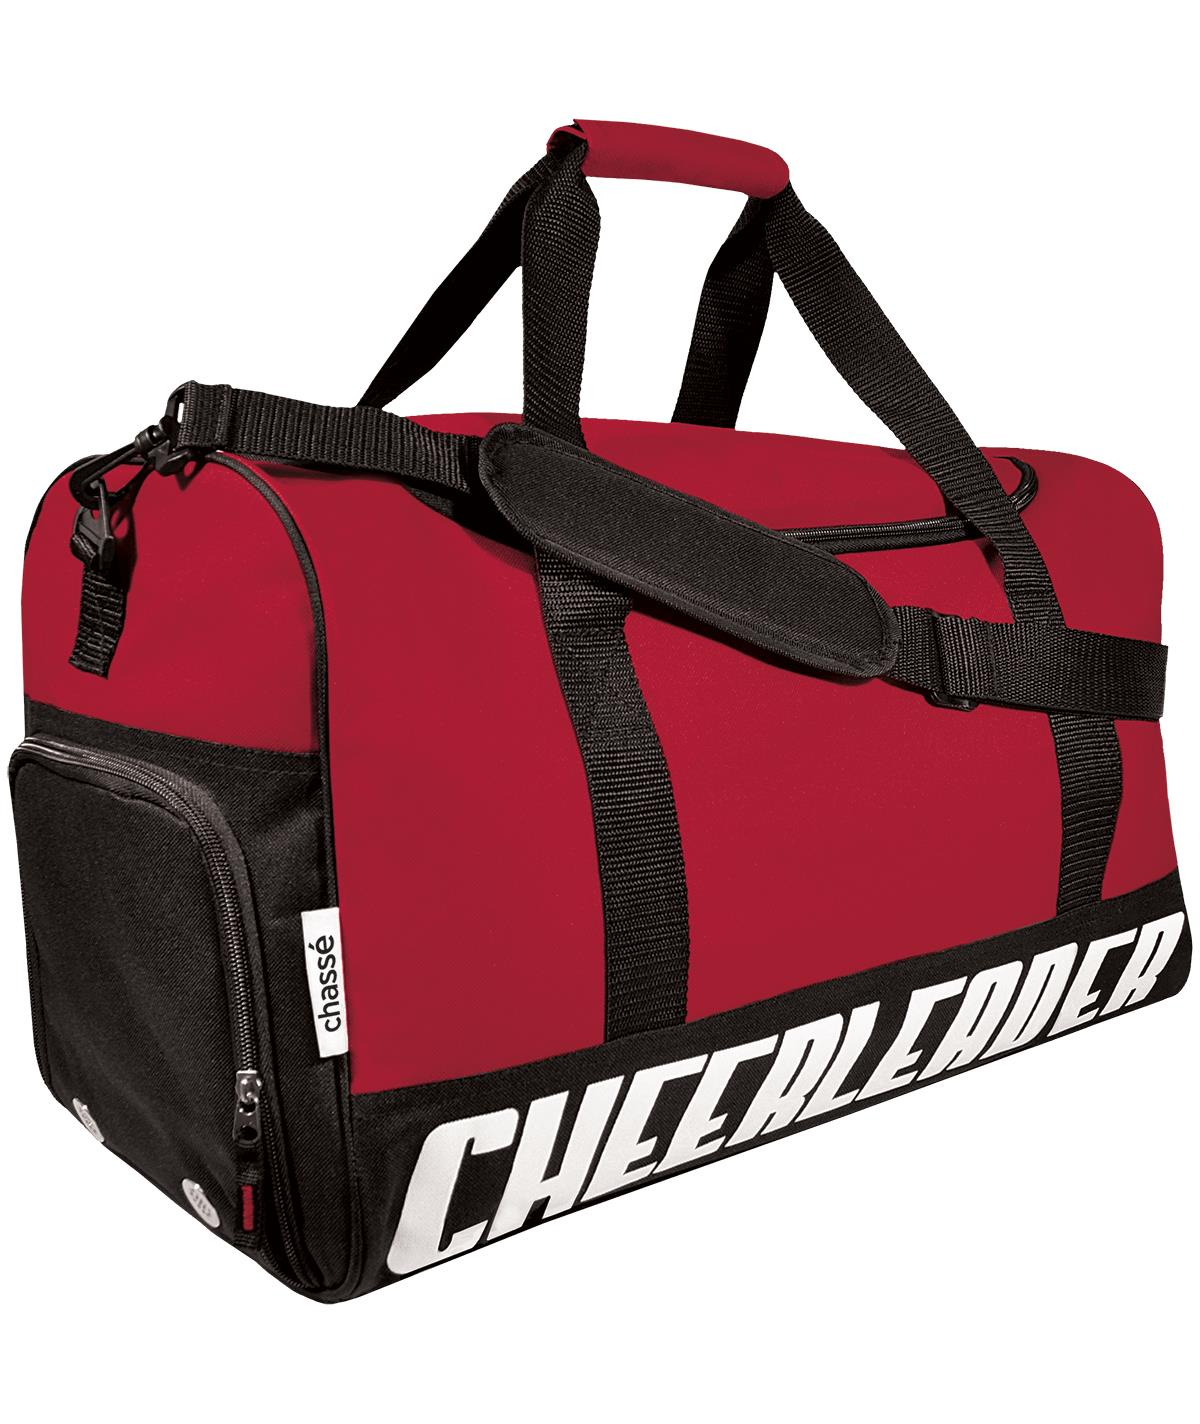 Chasse Travel Sport Bag